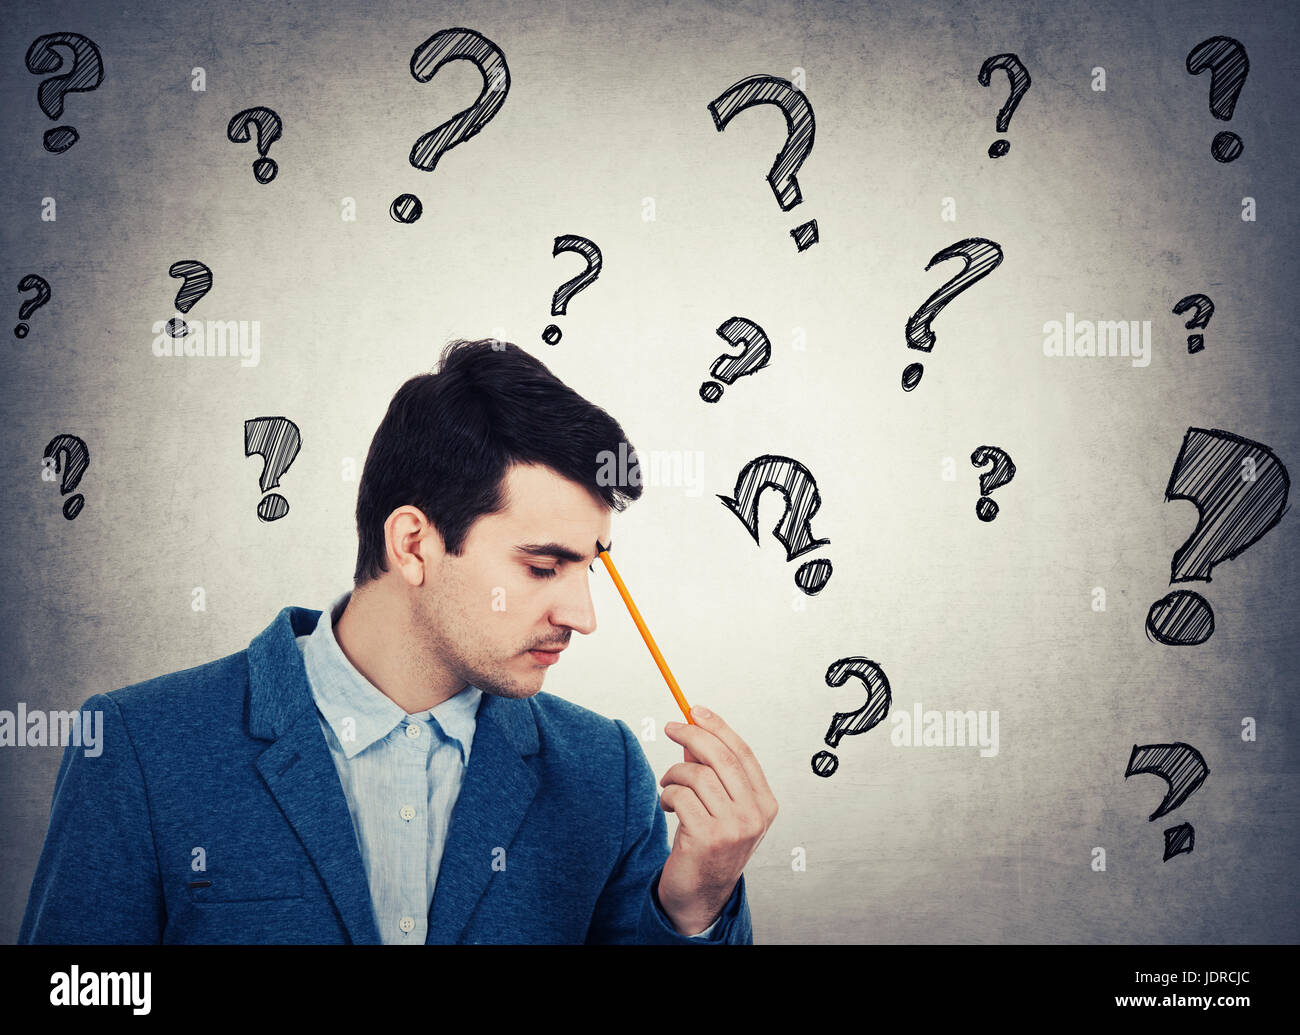 Thoughtful businessman holding a pencil pointed to face, drawing different interrogation marks like questions escaping - Stock Image